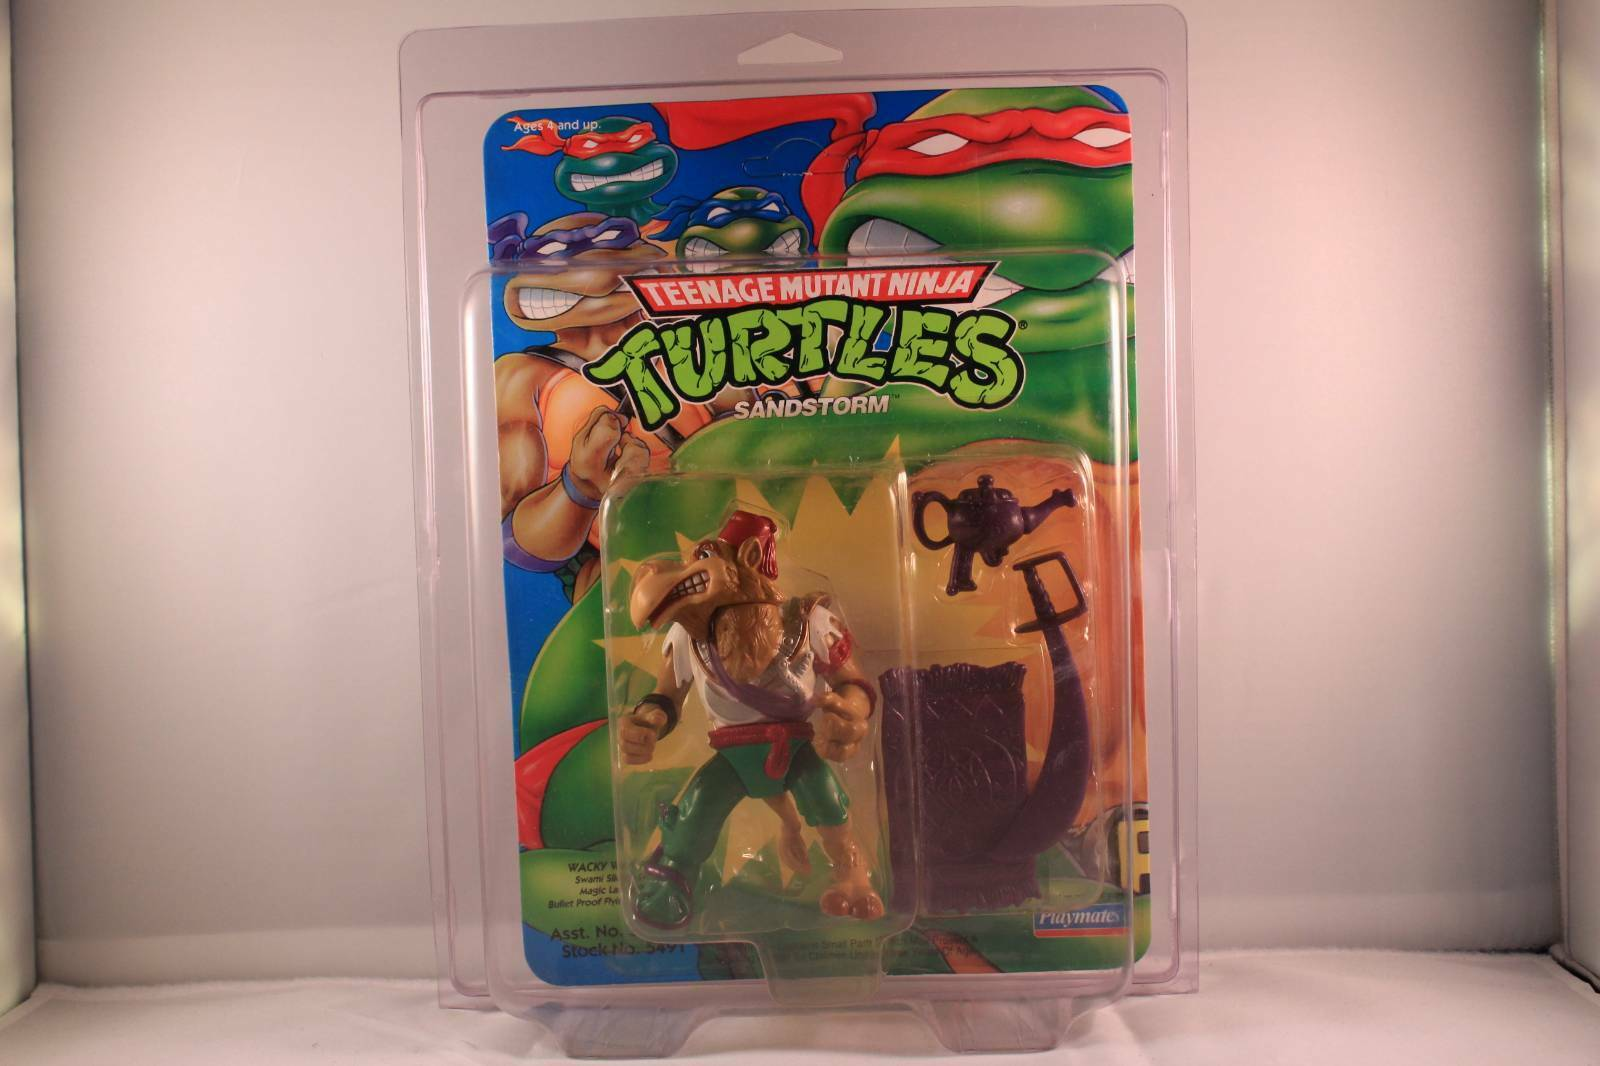 TMNT 1992 SANDSTORM blueE CARD UNPUNCHED MOC (WATCH THIS SPACE)